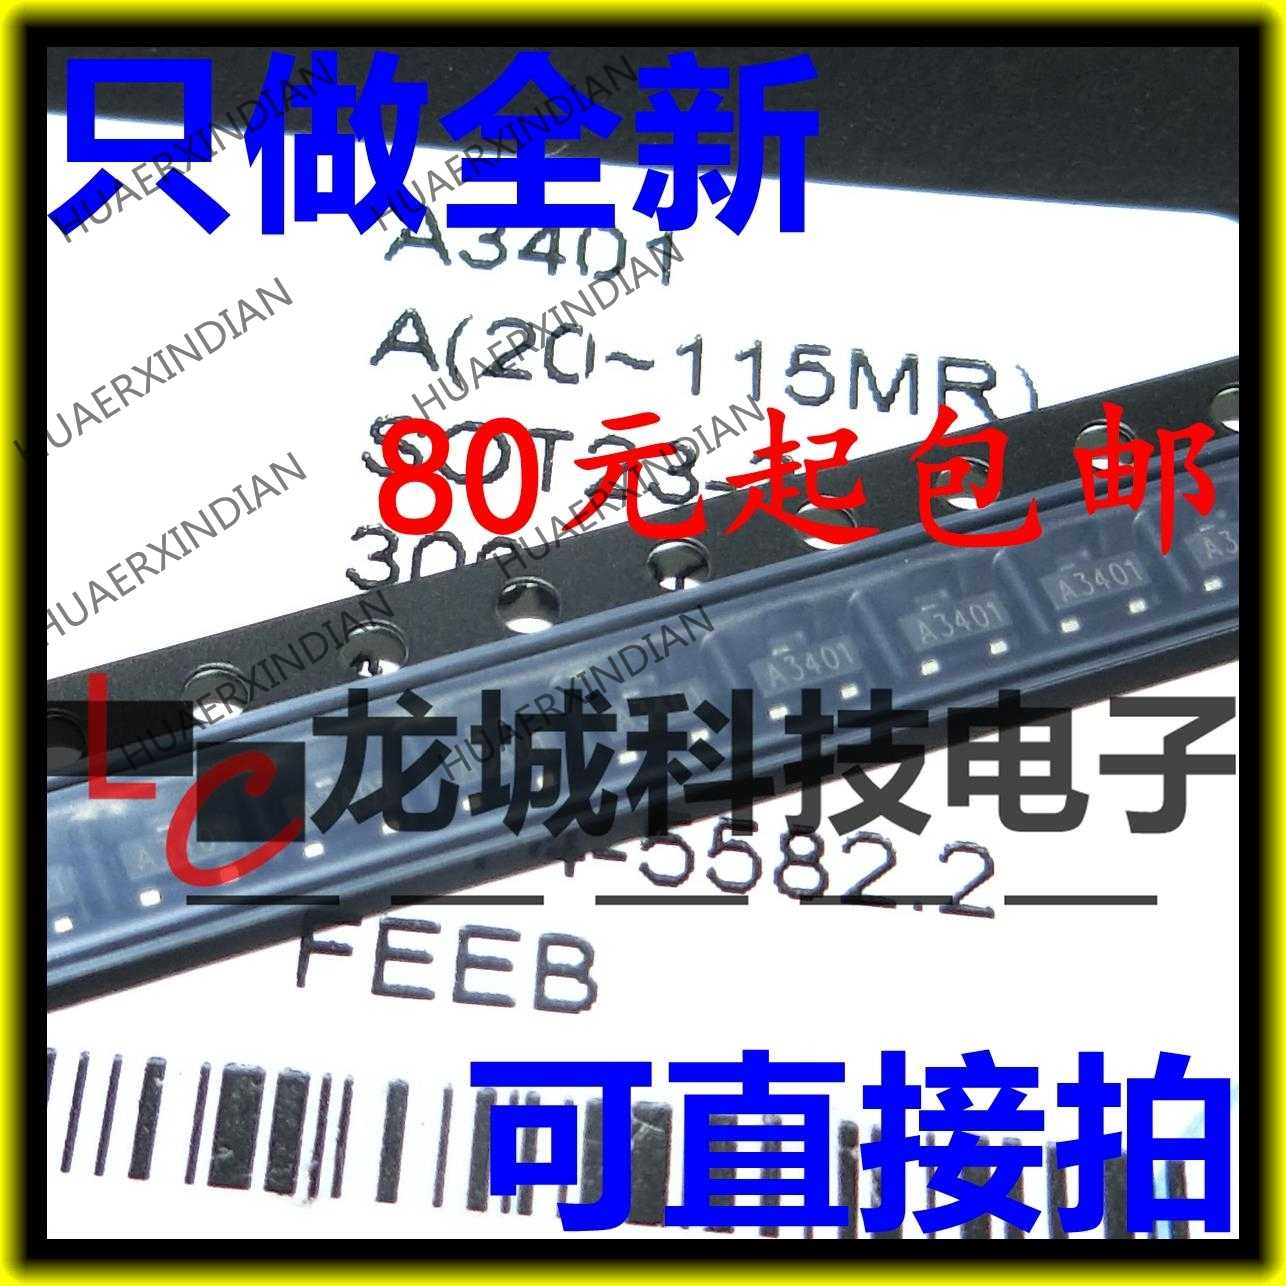 NEW  AO3401 A19T A3401 4.2A/30V SOT23 MOS 108/K  in stock